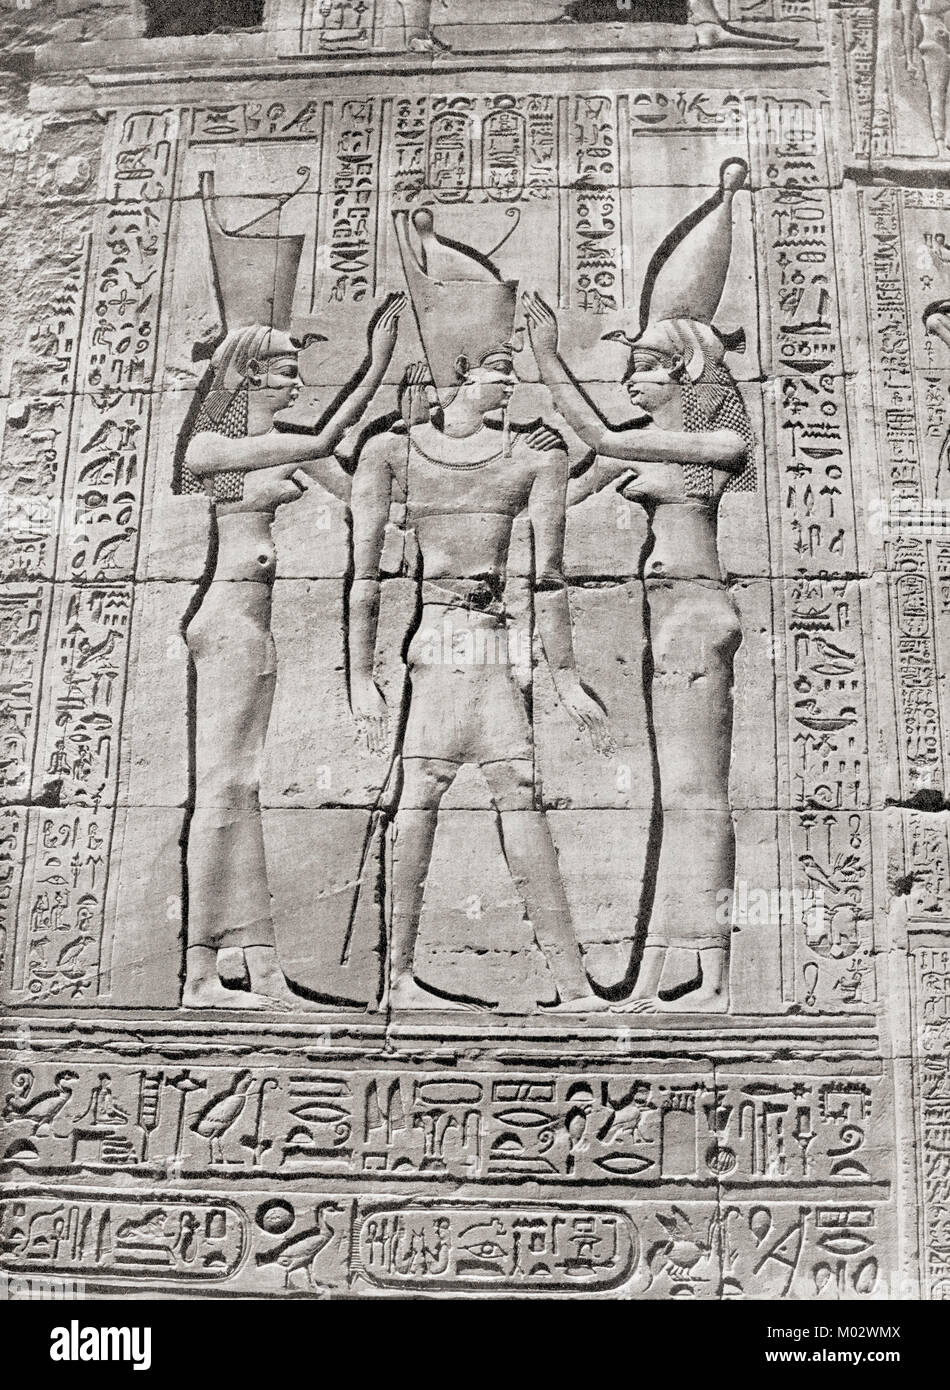 Bas-reliefs on the temple at Dendera, Egypt showing a Ptolemaic Pharaoh being crowned by the goddesses Nekhbet and - Stock Image